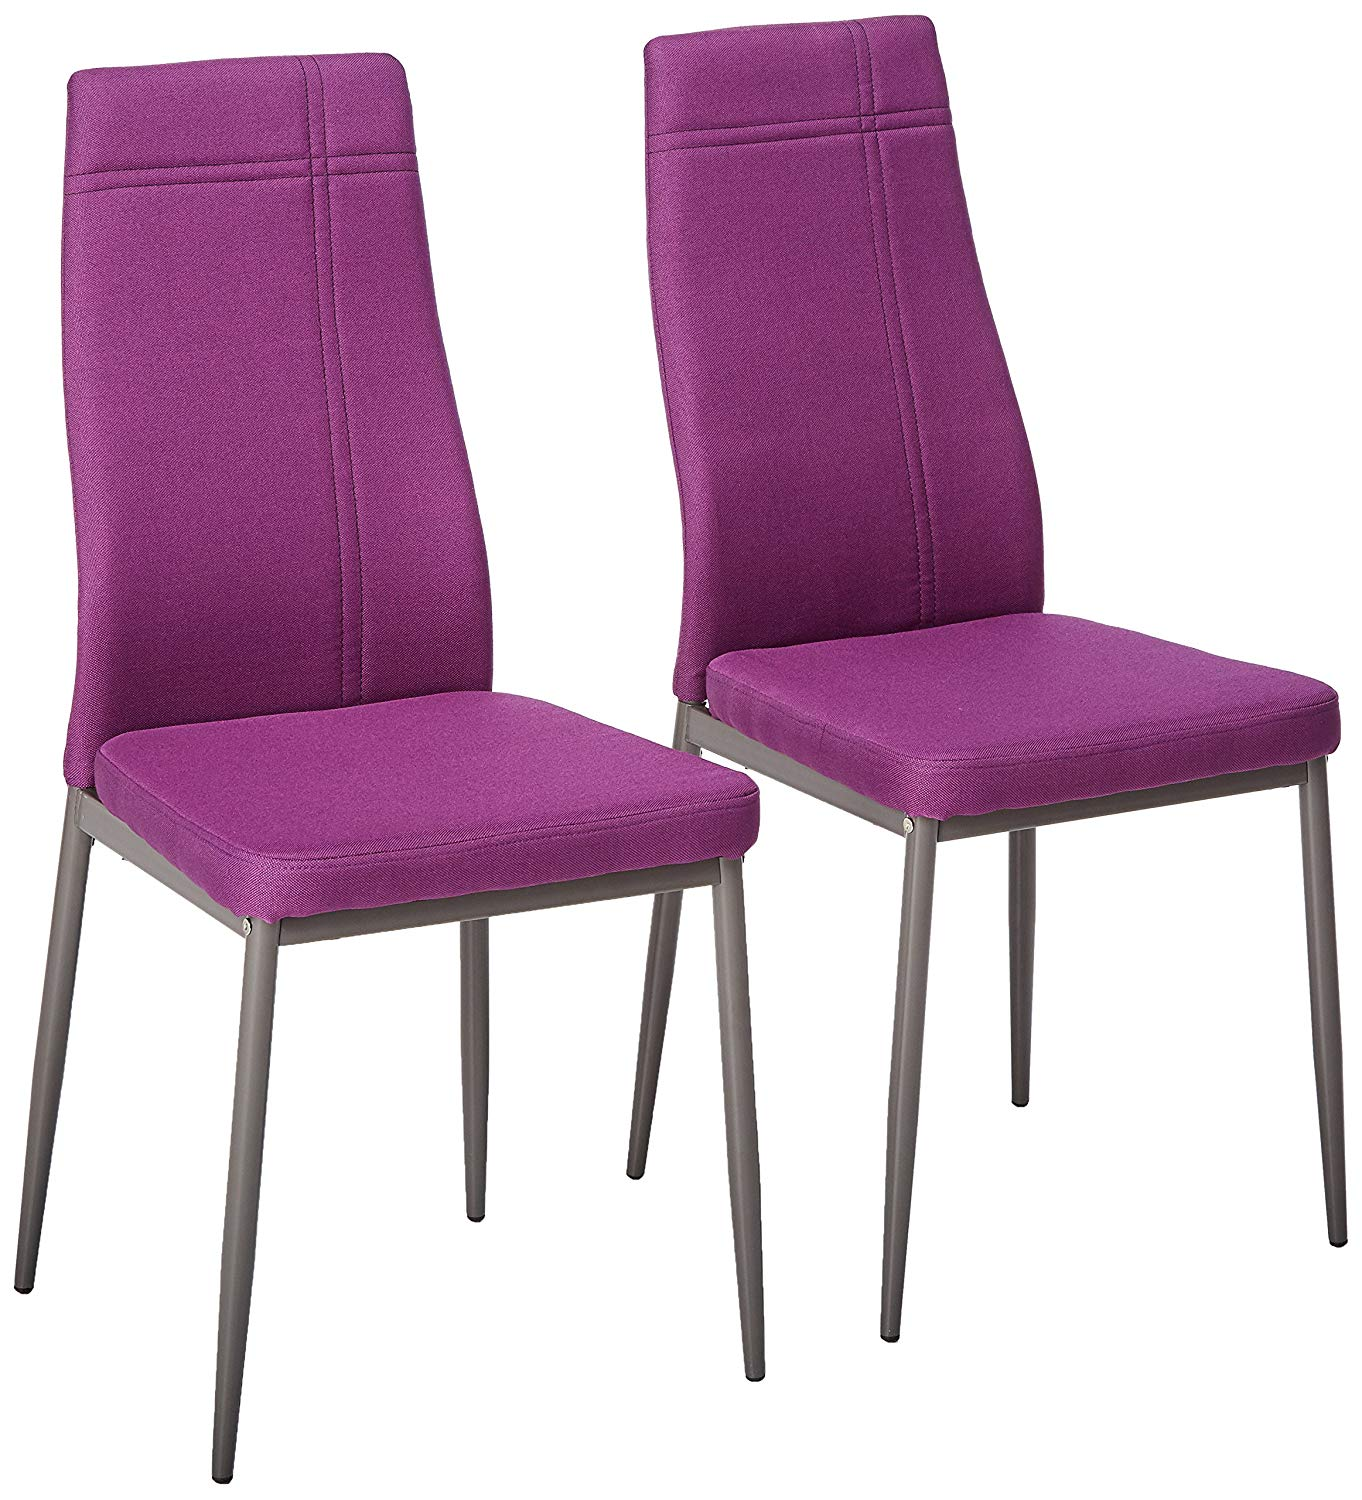 Bri Kitchen Dining Chairs, Purple Fabric & Metal Frame, Modern (Set Of Two)